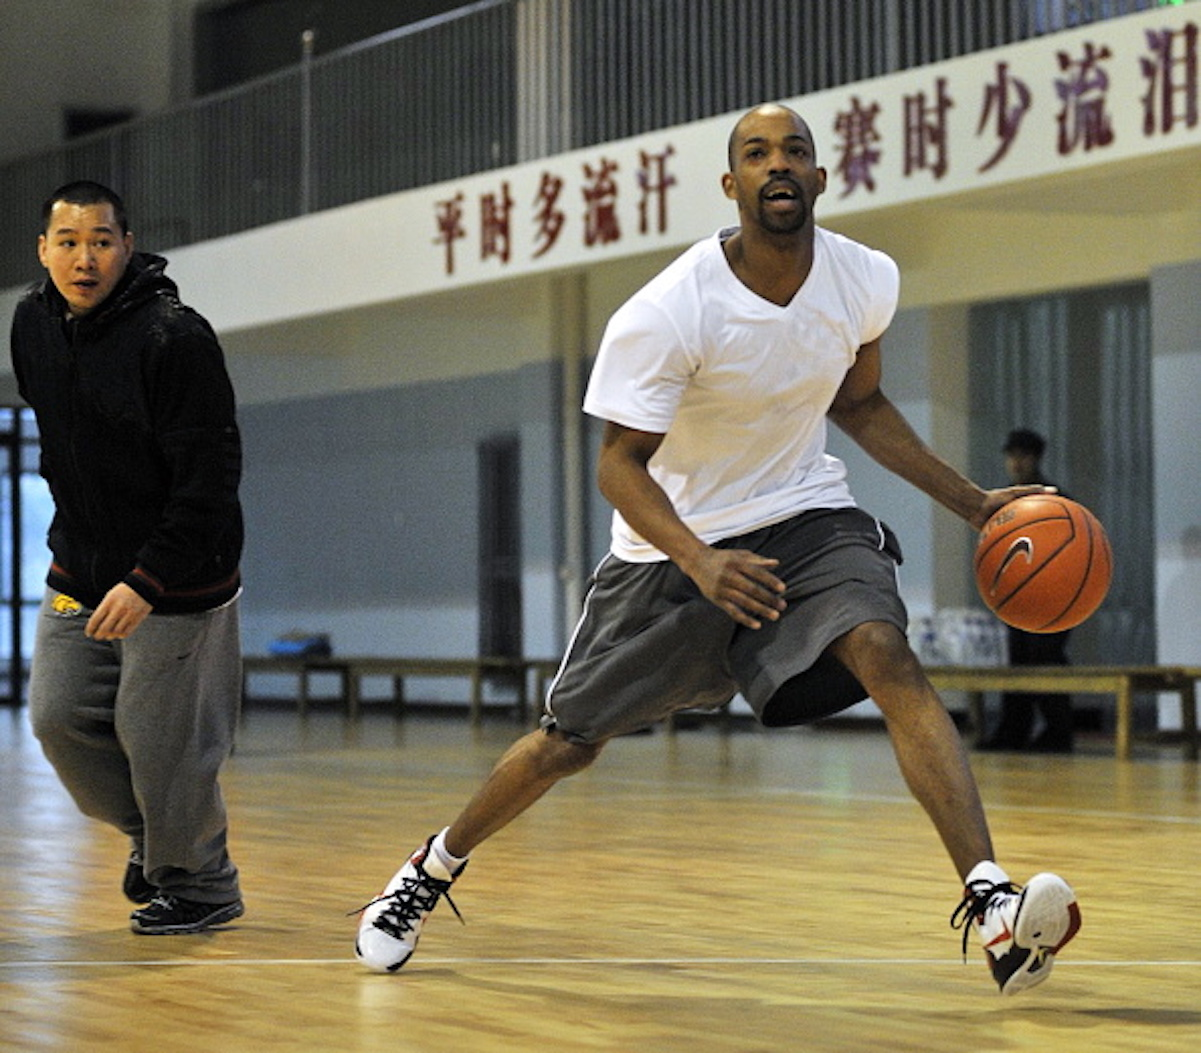 Rafer Alston basketball